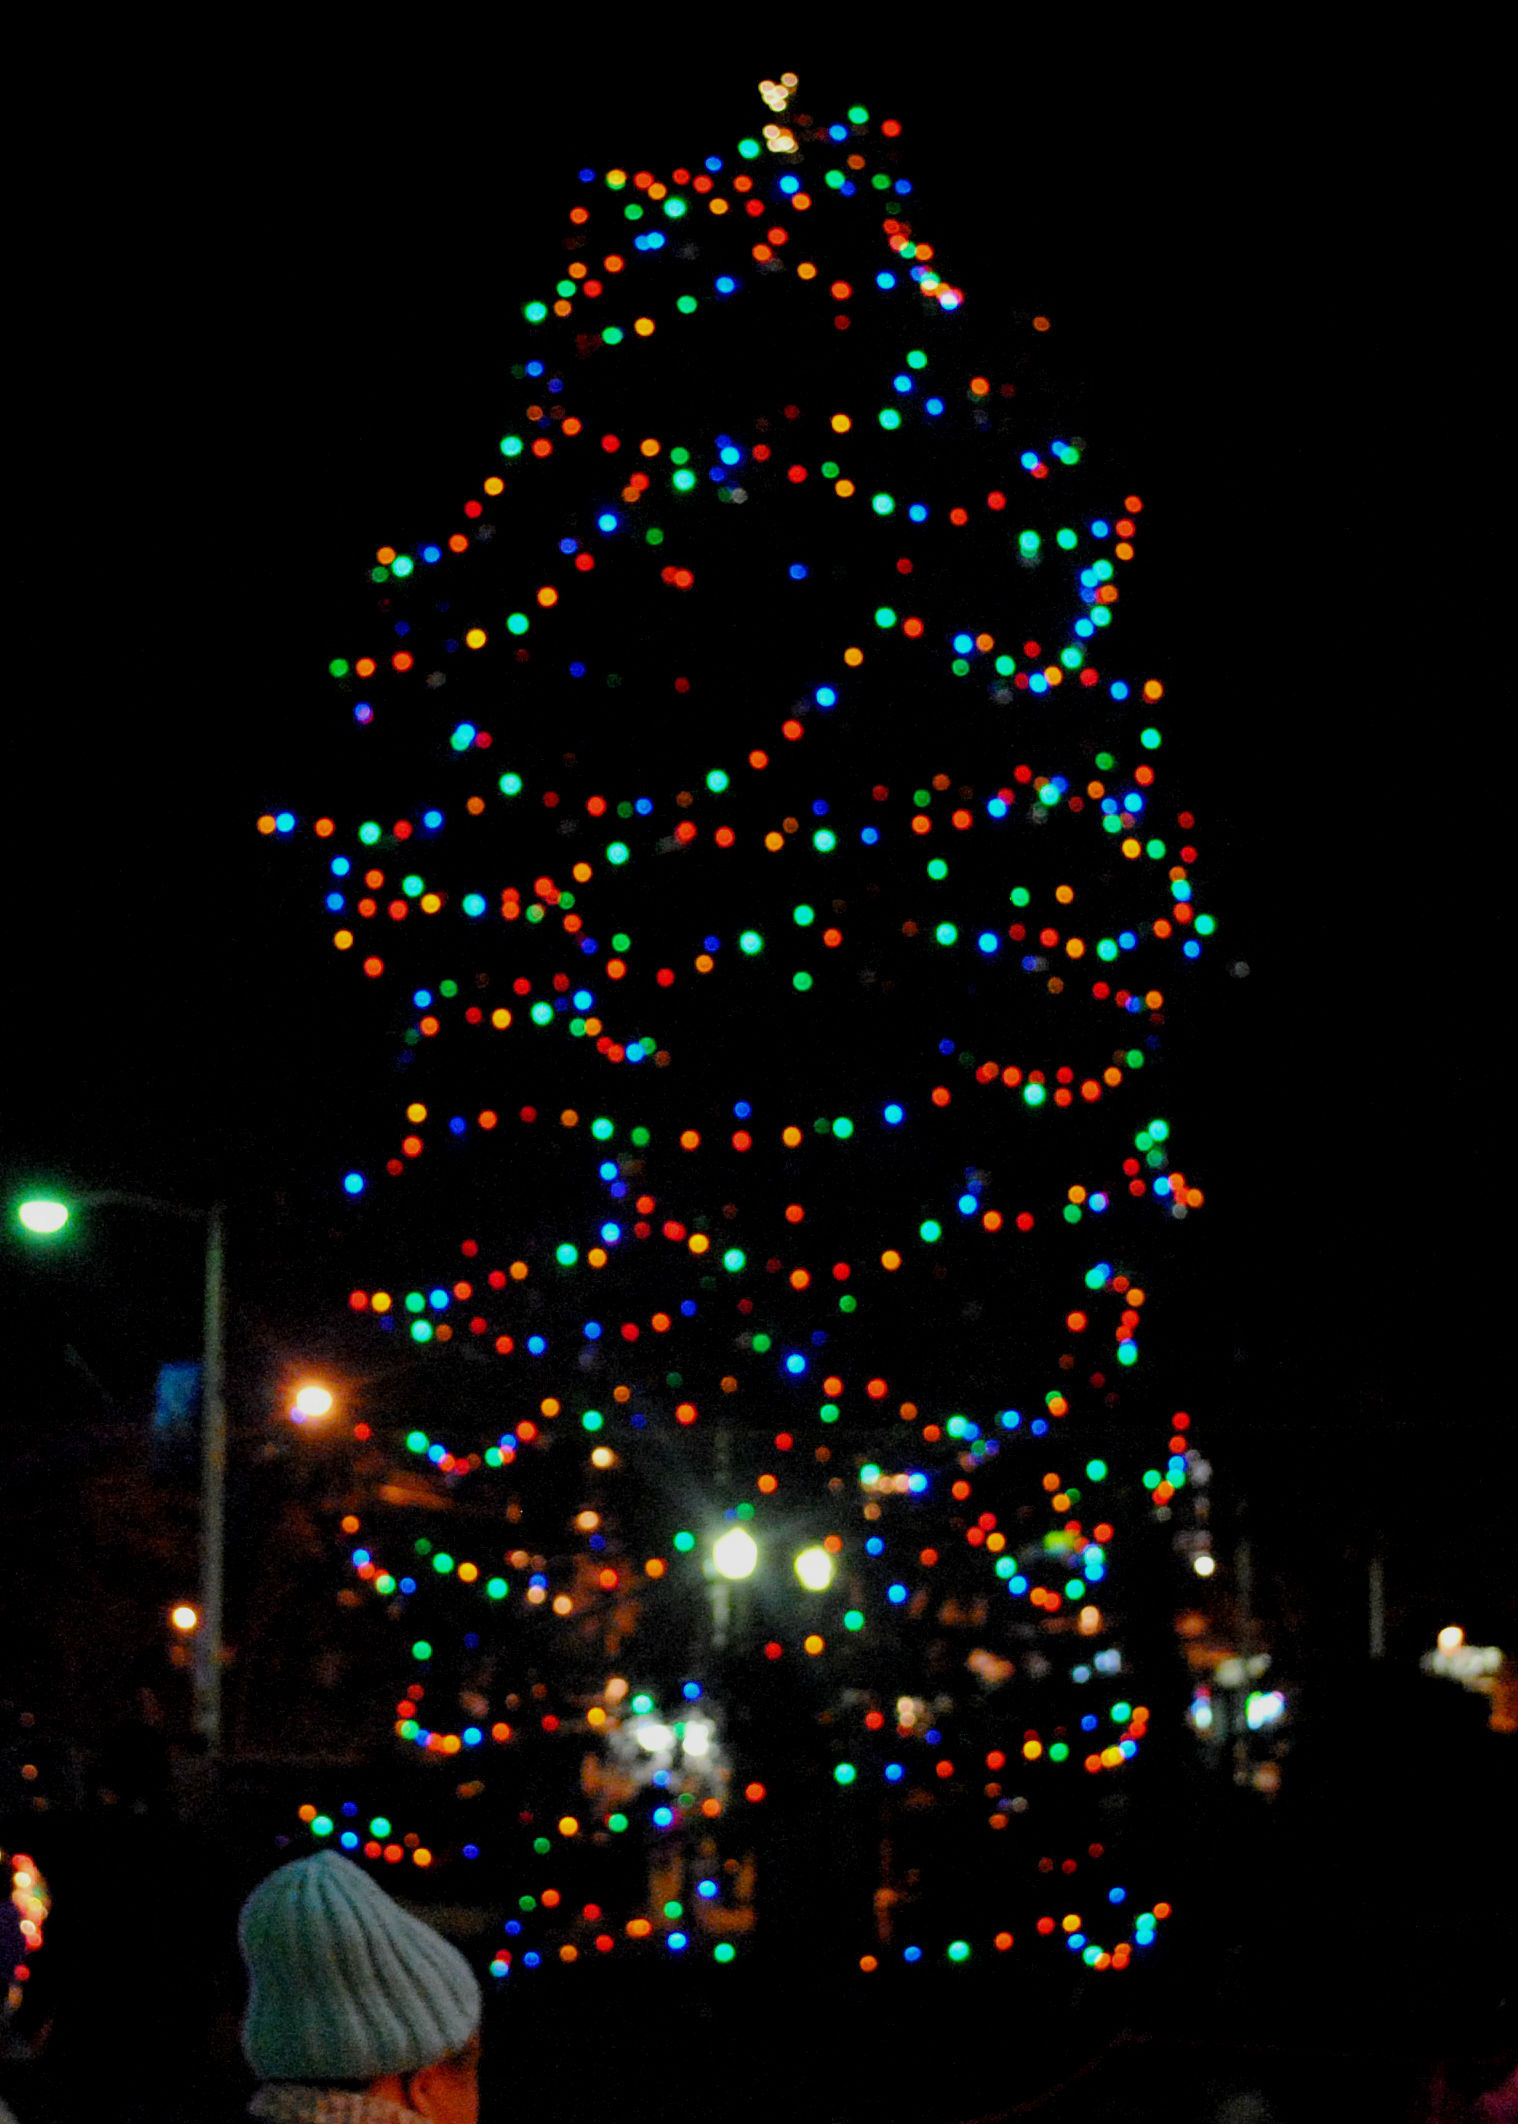 west orange old fashioned christmas tree lighting and events brighten community - Old Fashioned Christmas Tree Lights